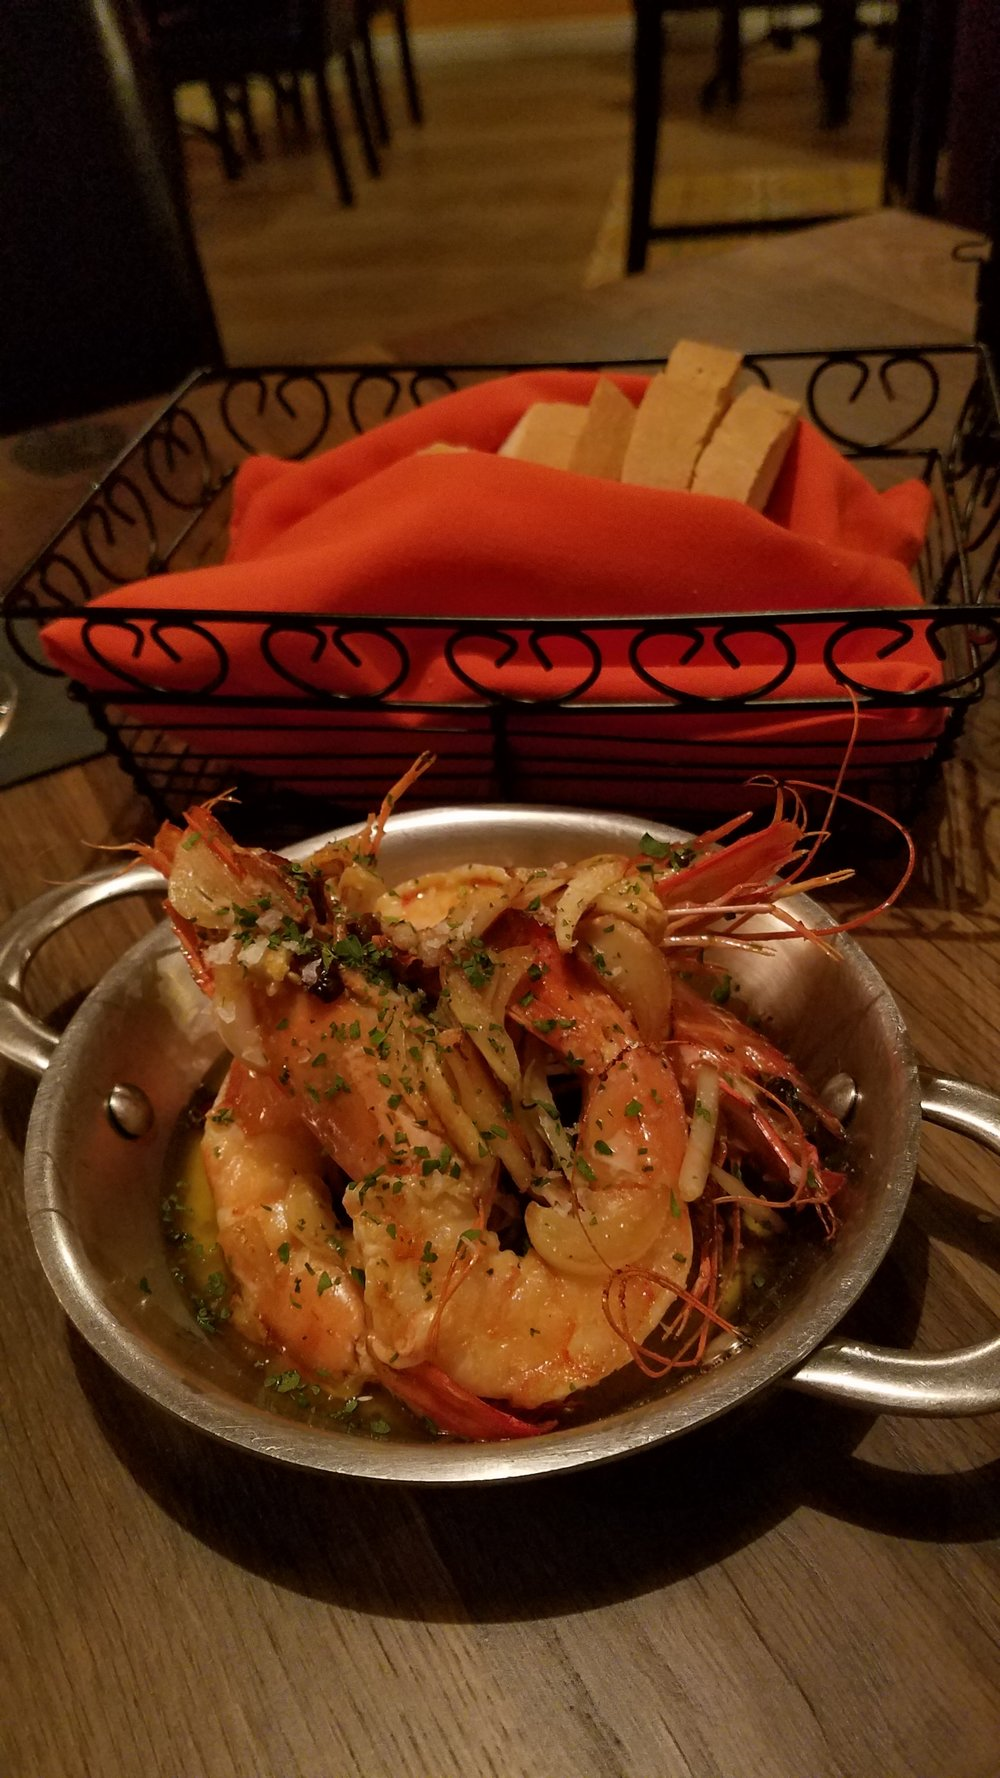 Gambas al Ajillo - garlic shrimp, olive oil. Yes the shrimp come with the heads. No you won't die! The shrimp were super tender and very flavourful